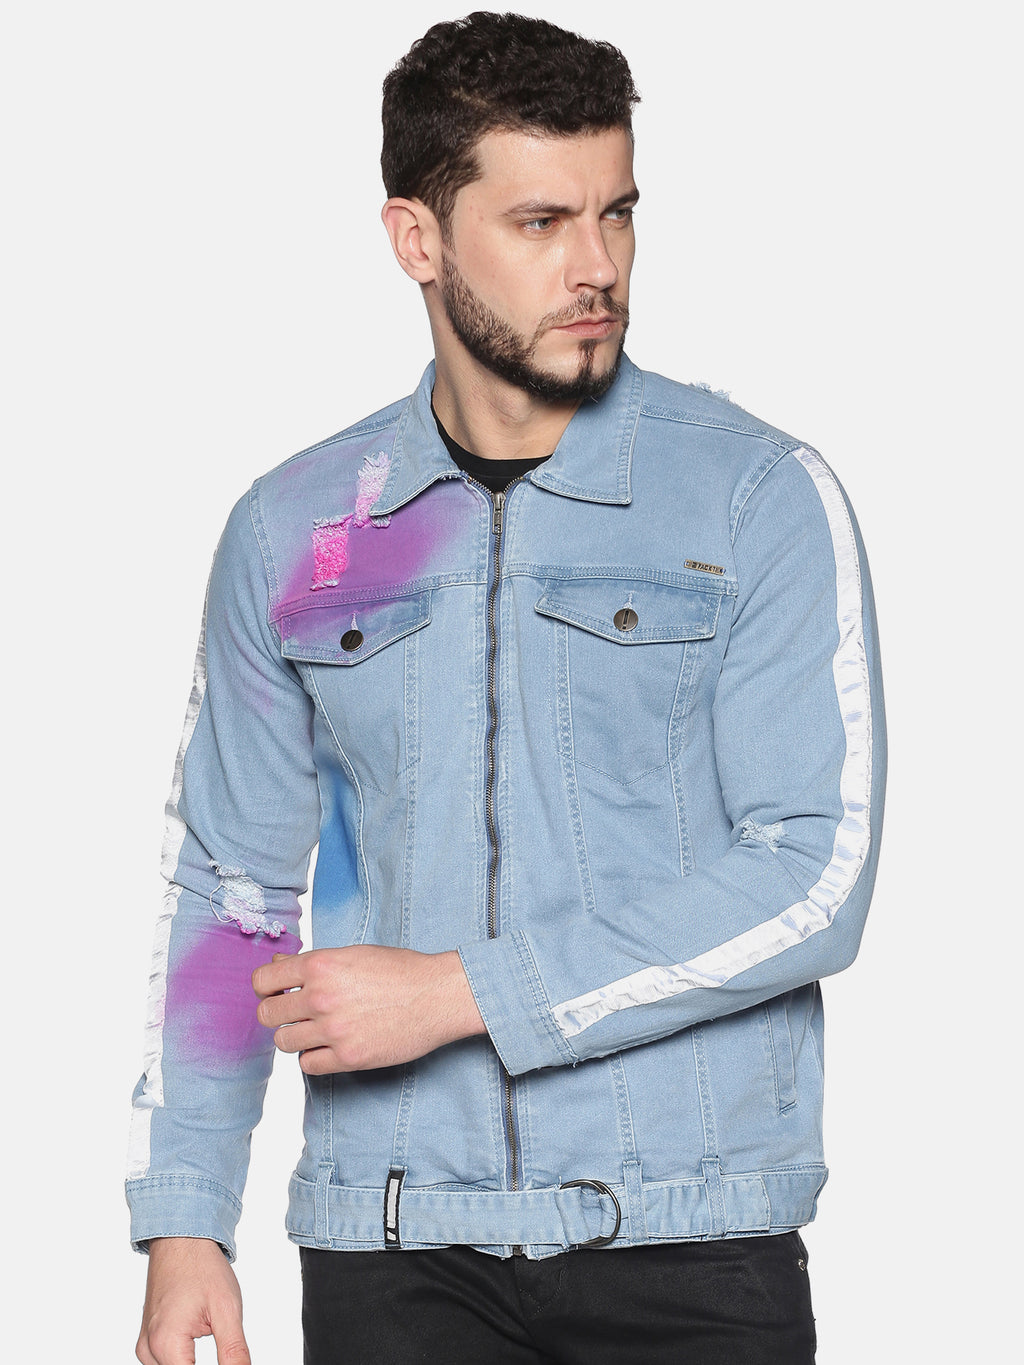 Impackt Men's Full Sleeves Denim Jackets With Distressed, Spray Print & Sleeve Side Tape